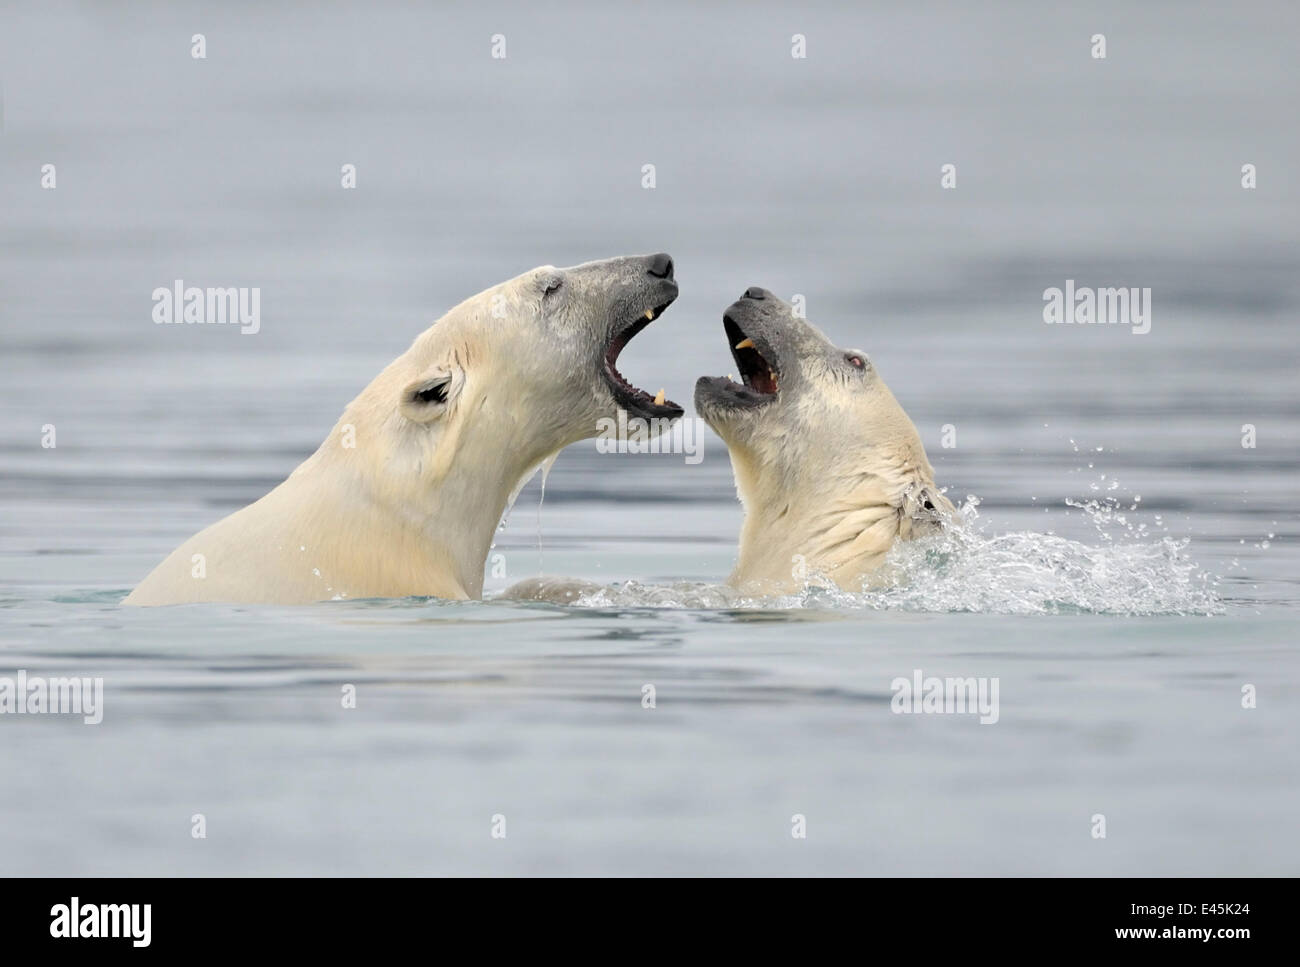 Polar Bear (Ursus maritimus) mother and cub playing in water, Svalbard, Norway, September 2009 Stock Photo